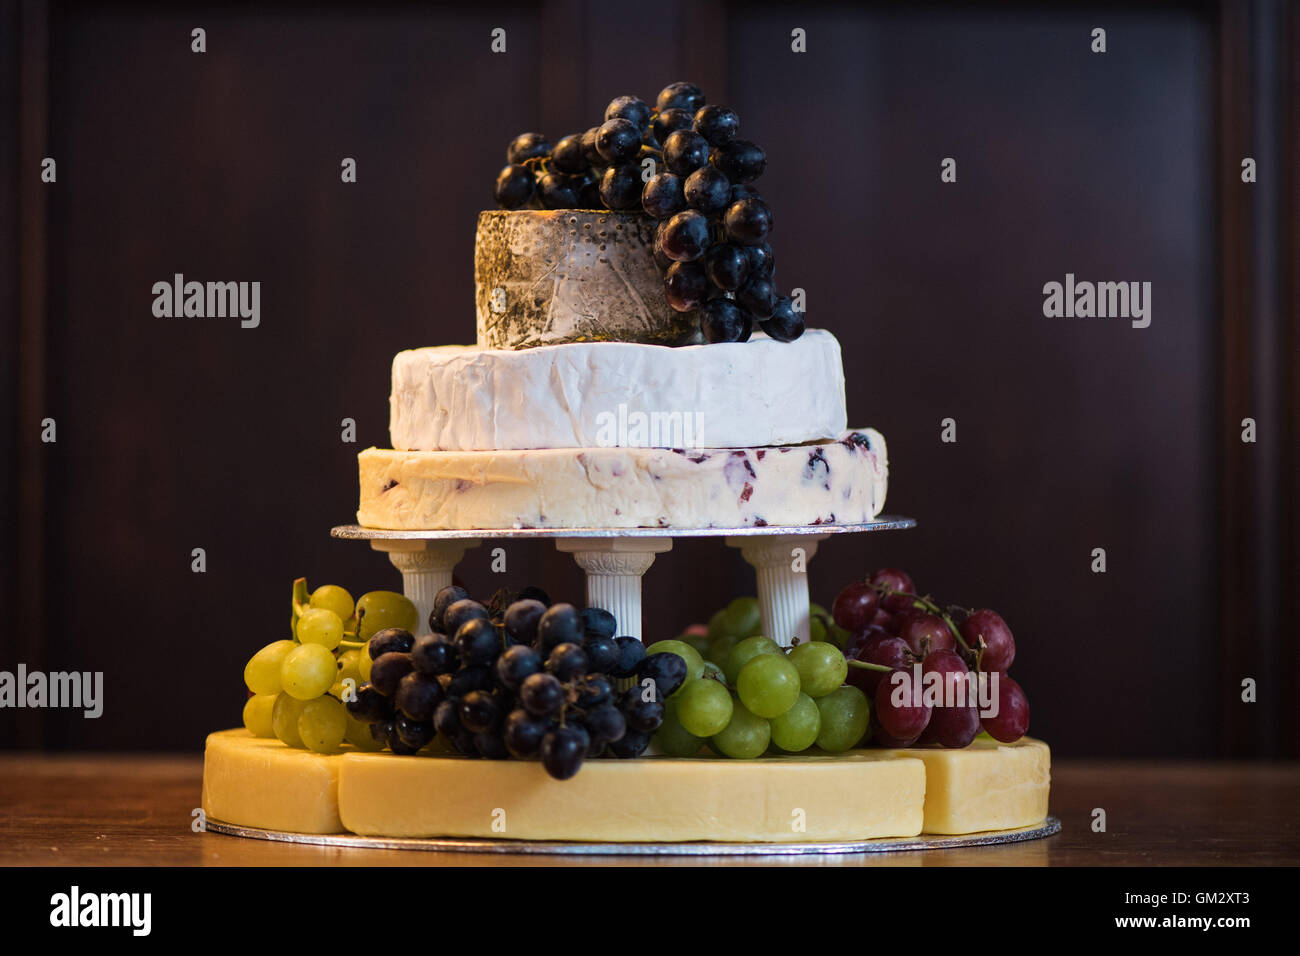 A stack of cheeses with grapes forming a cake at a wedding reception - Stock Image